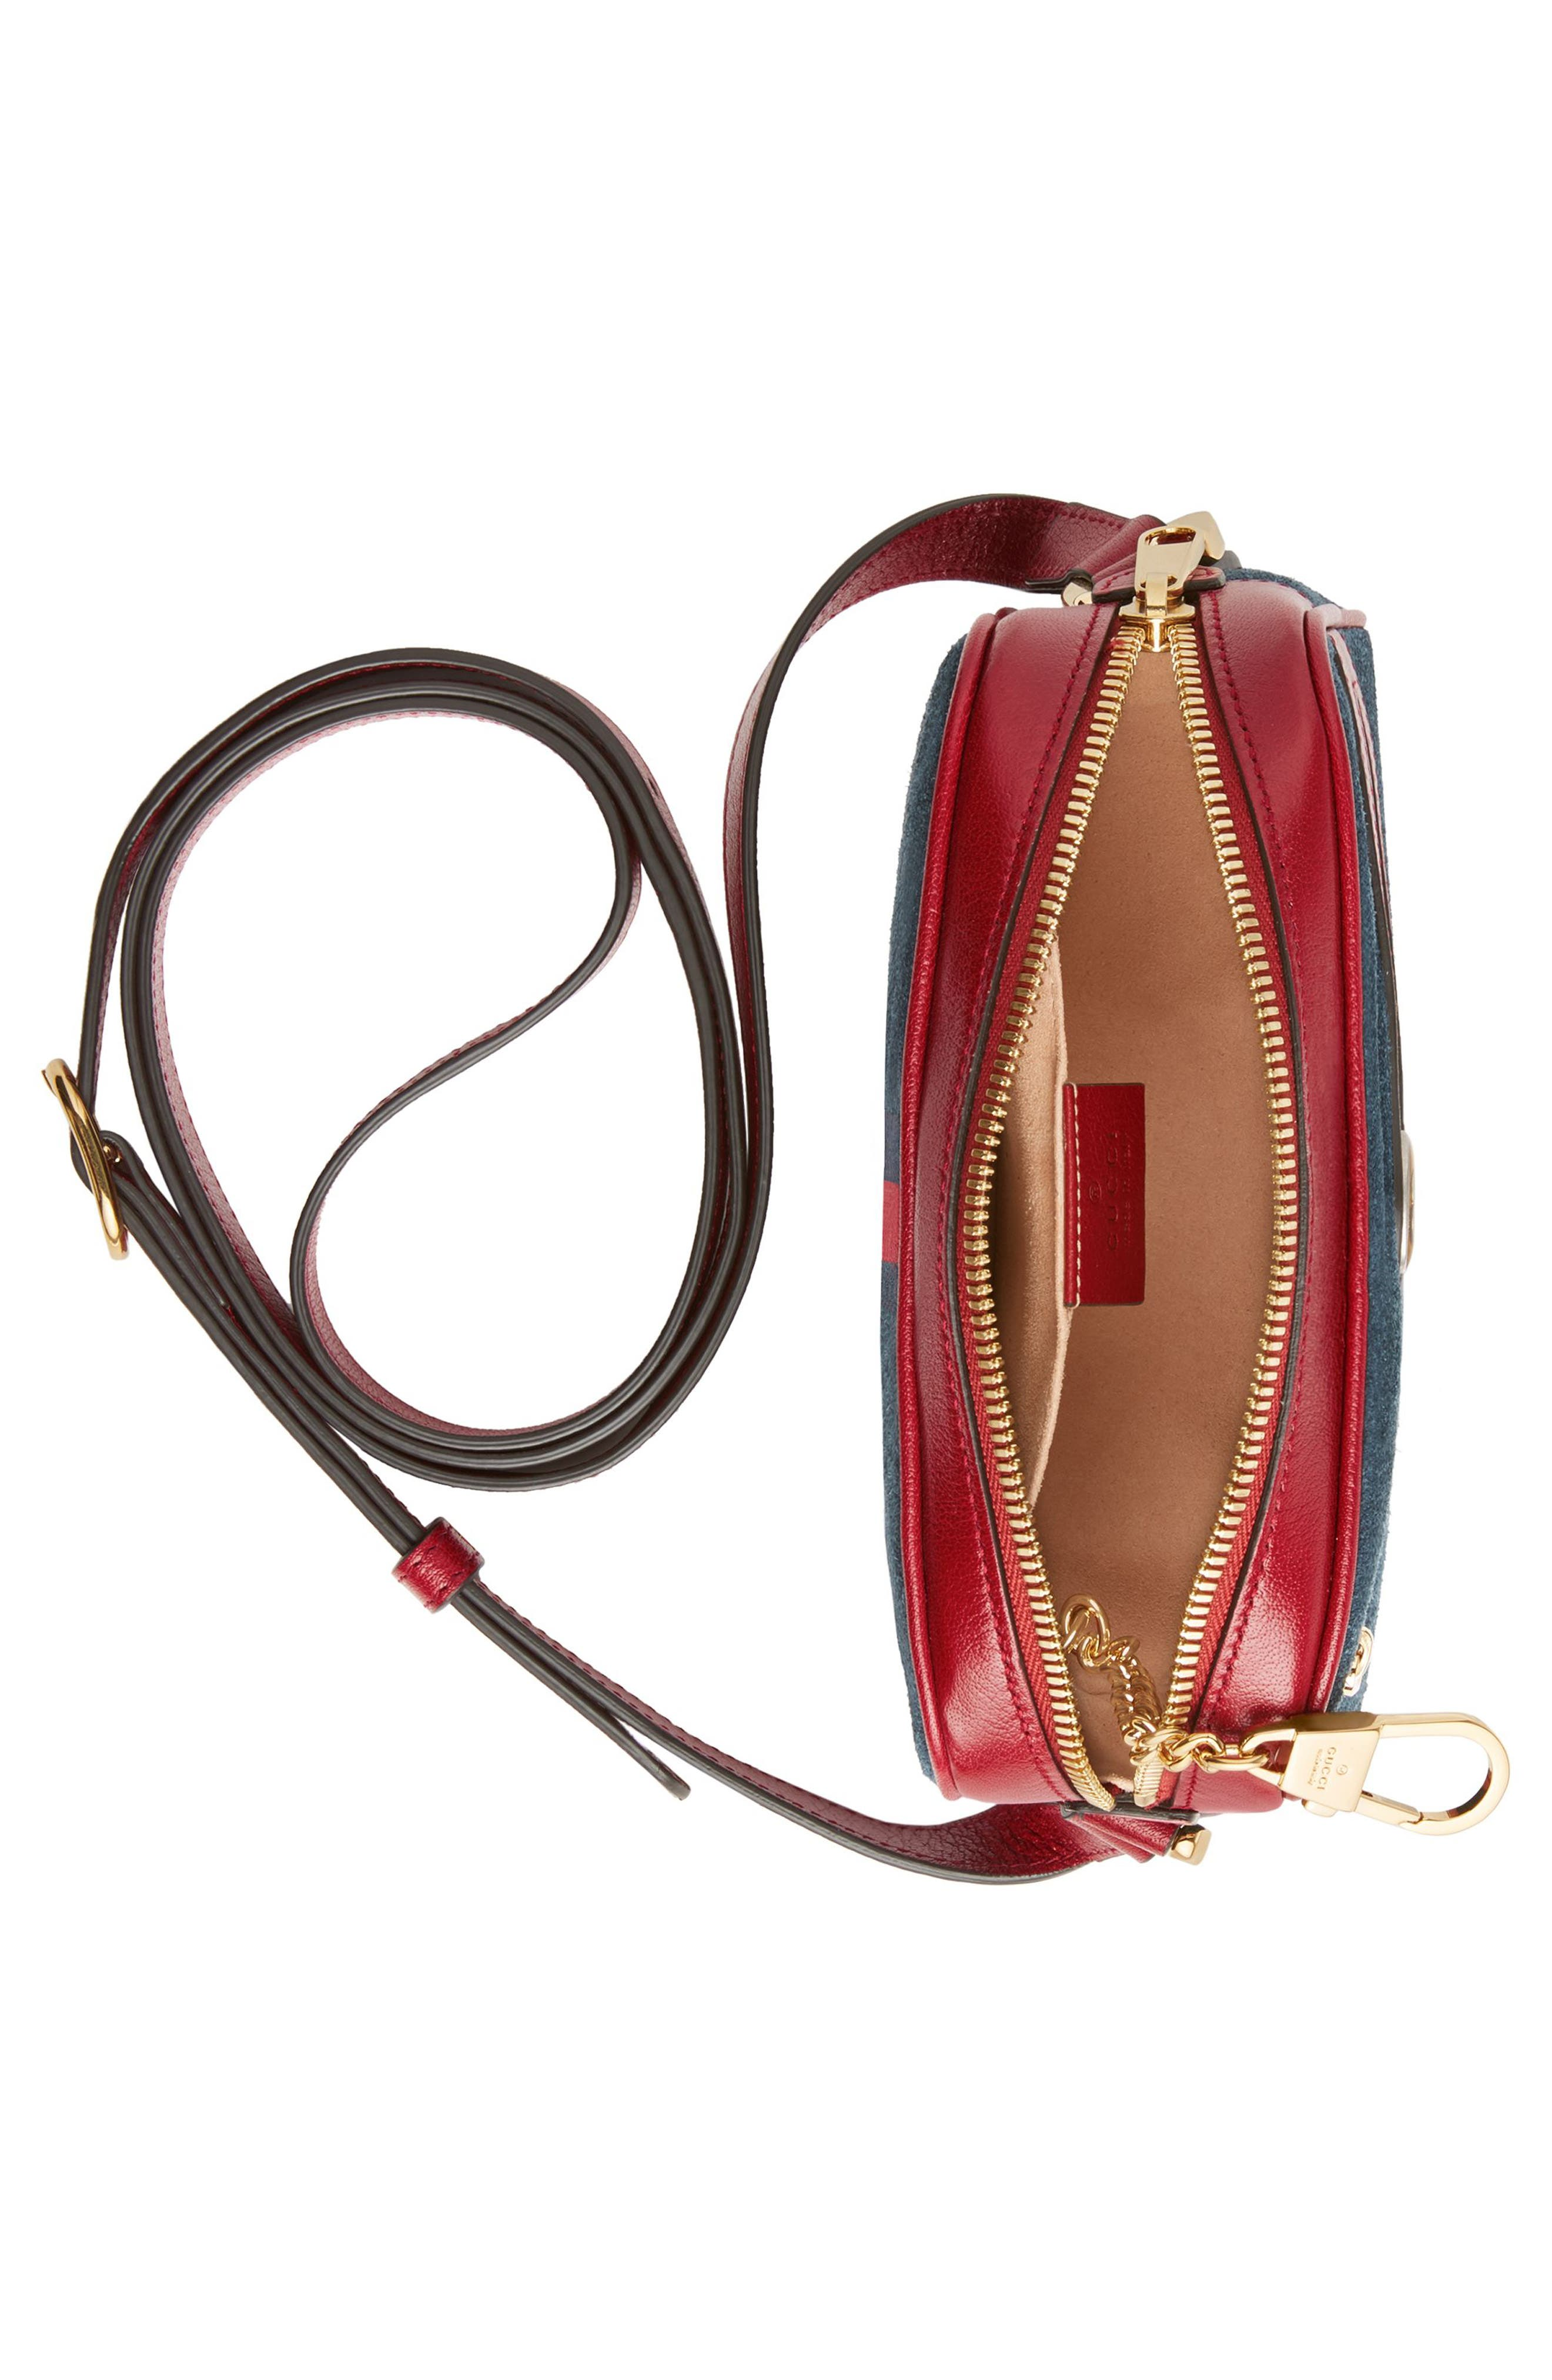 Ophidia Small Suede & Leather Crossbody Bag,                             Alternate thumbnail 3, color,                             NEW BLU/ ROMANATIC CERISE